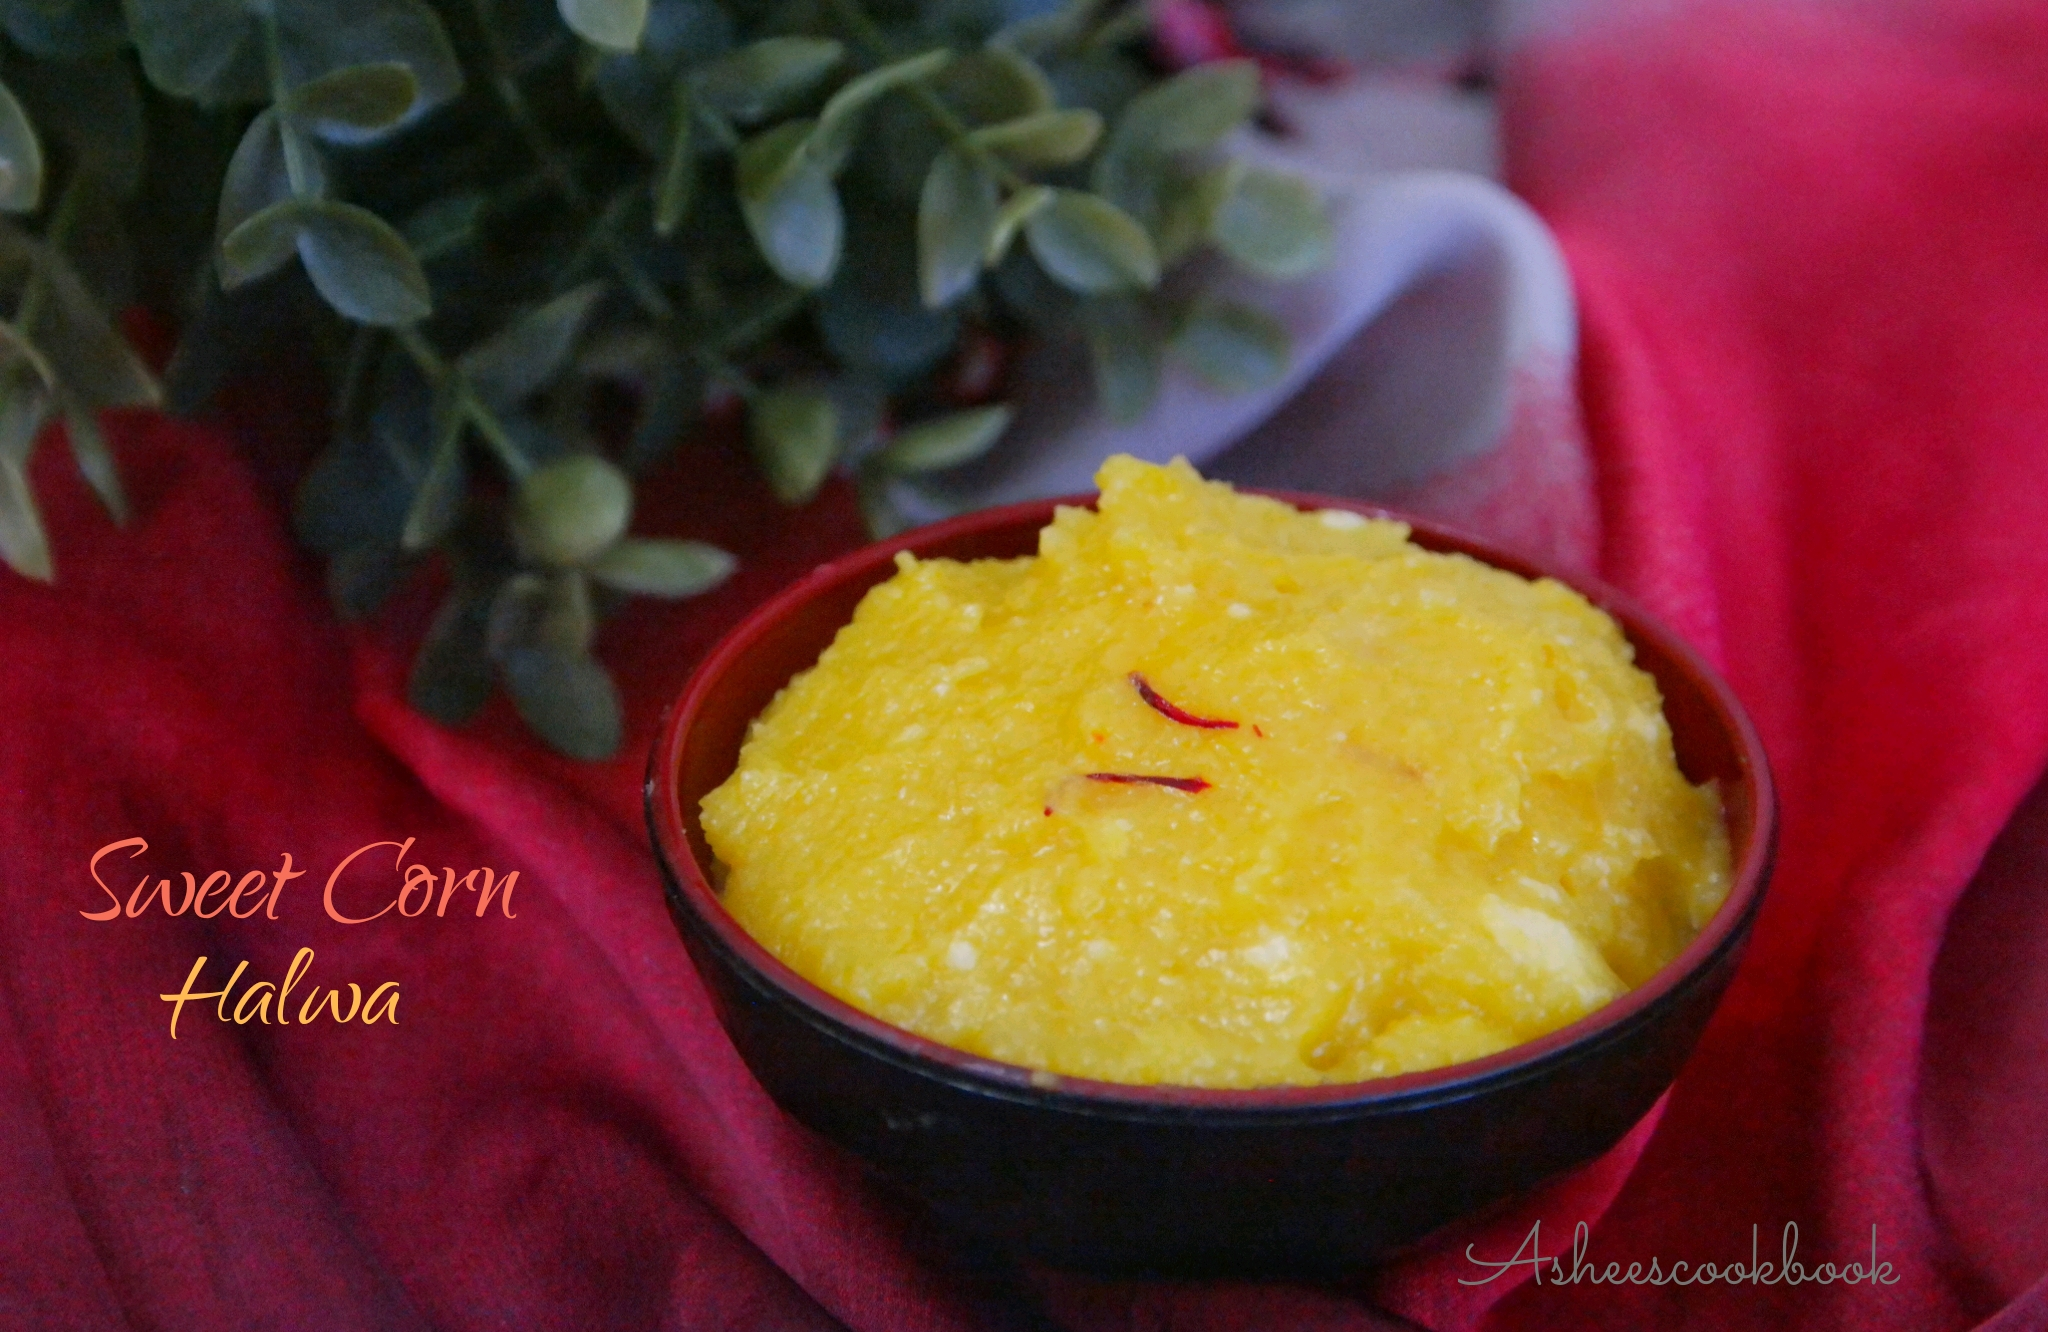 sweetcorn halwa